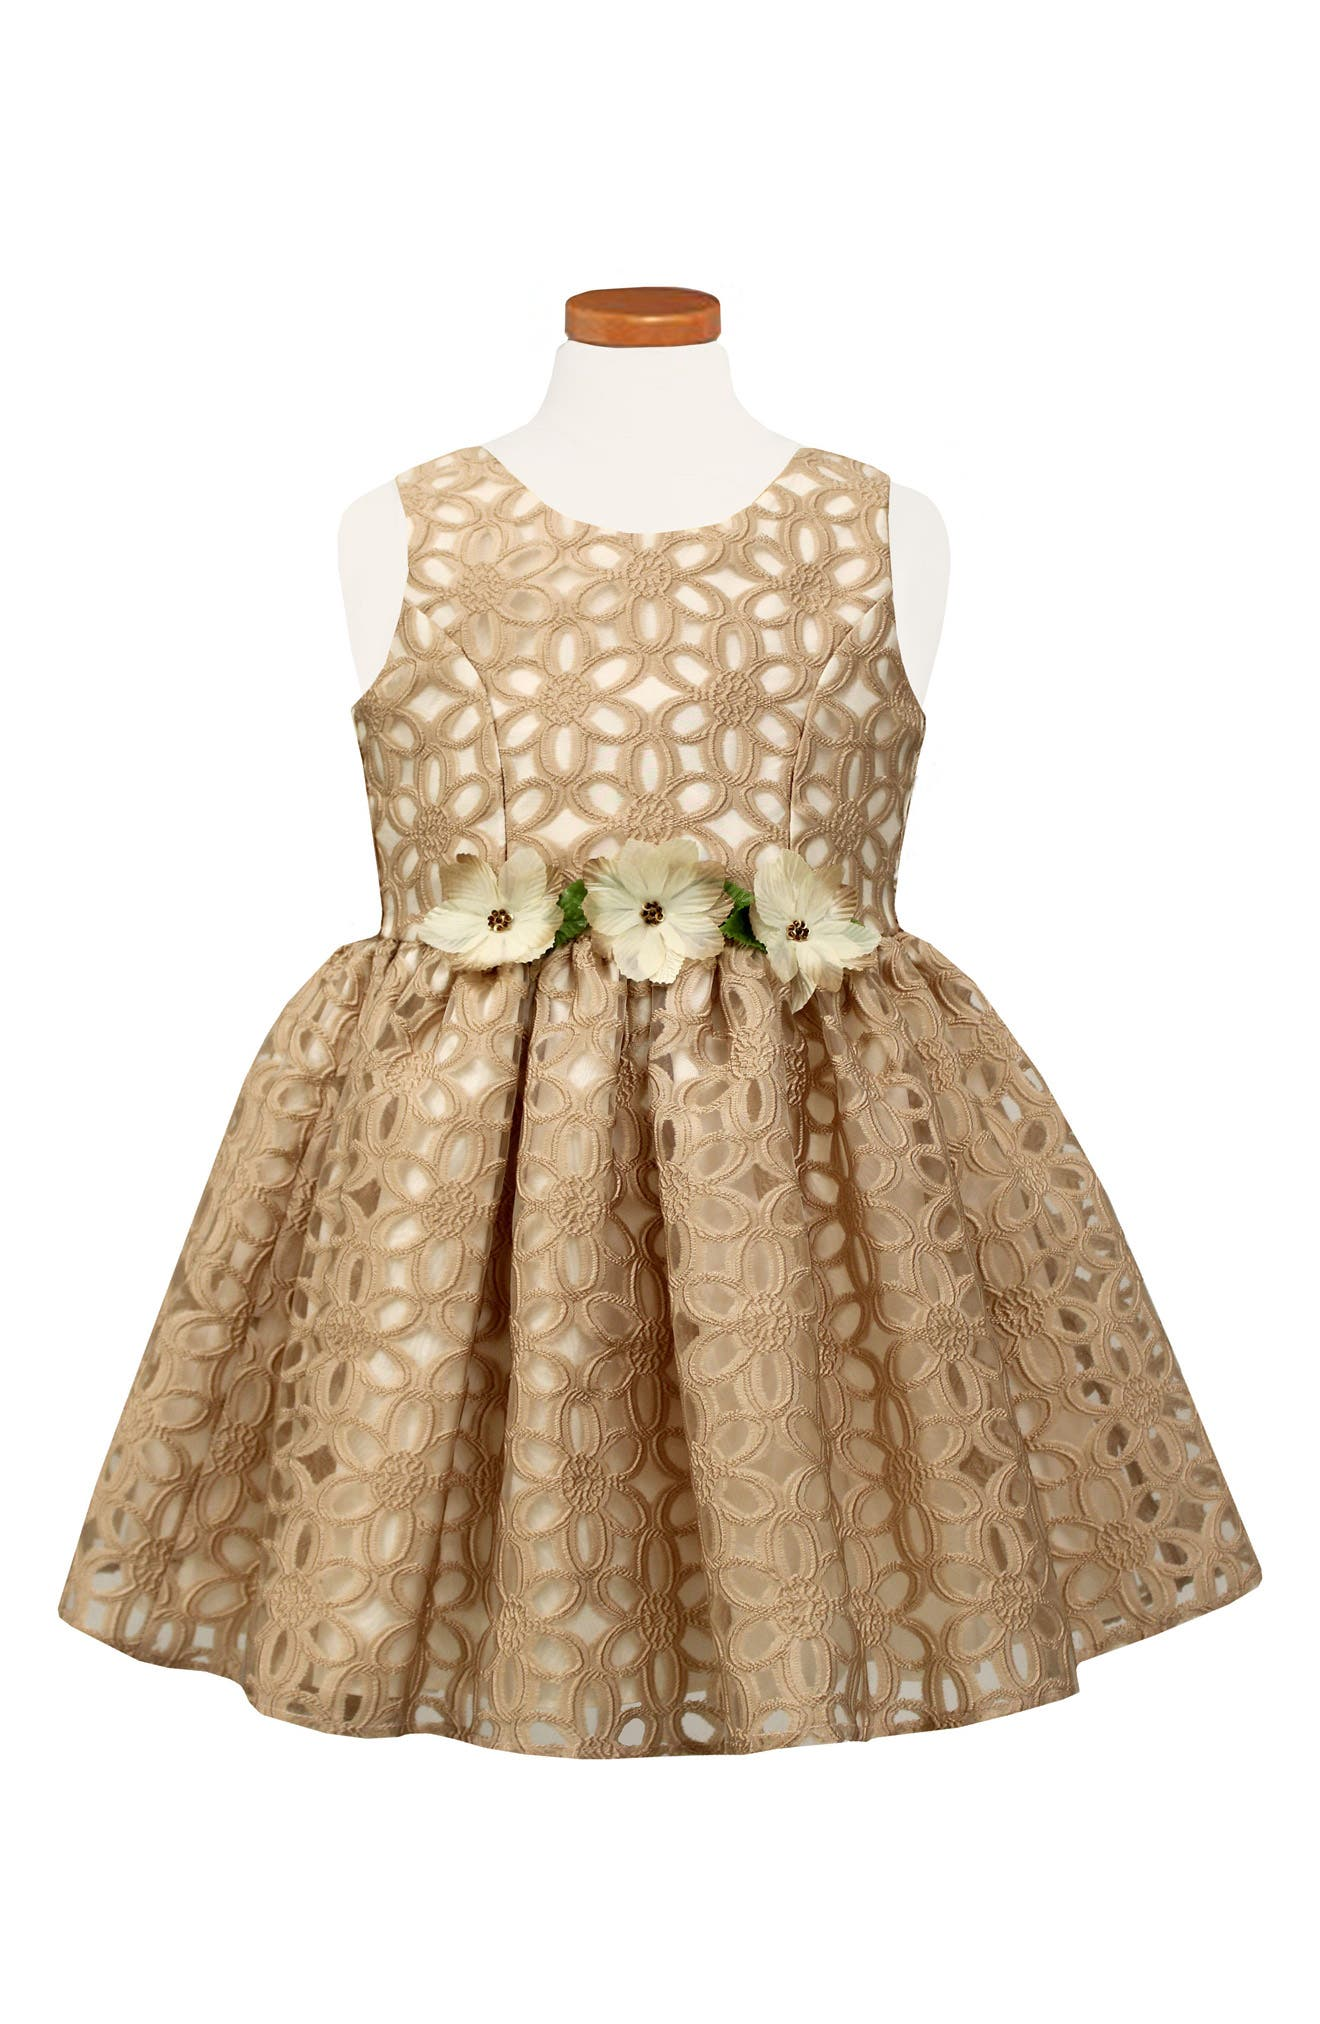 Main Image - Sorbet Floral Burnout Party Dress (Toddler Girls & Little Girls)